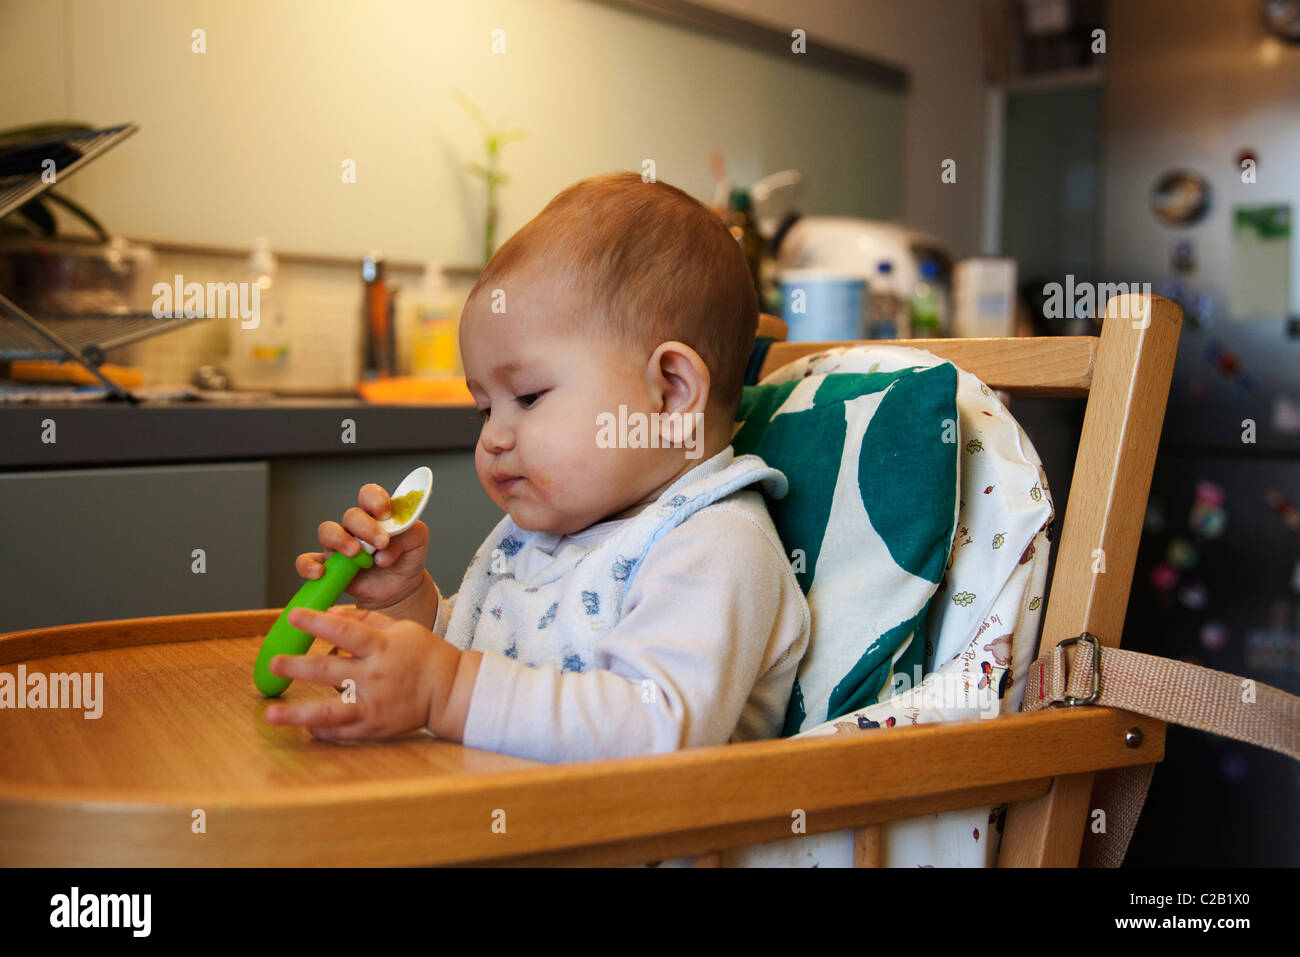 Baby girl eating, playing with spoon - Stock Image